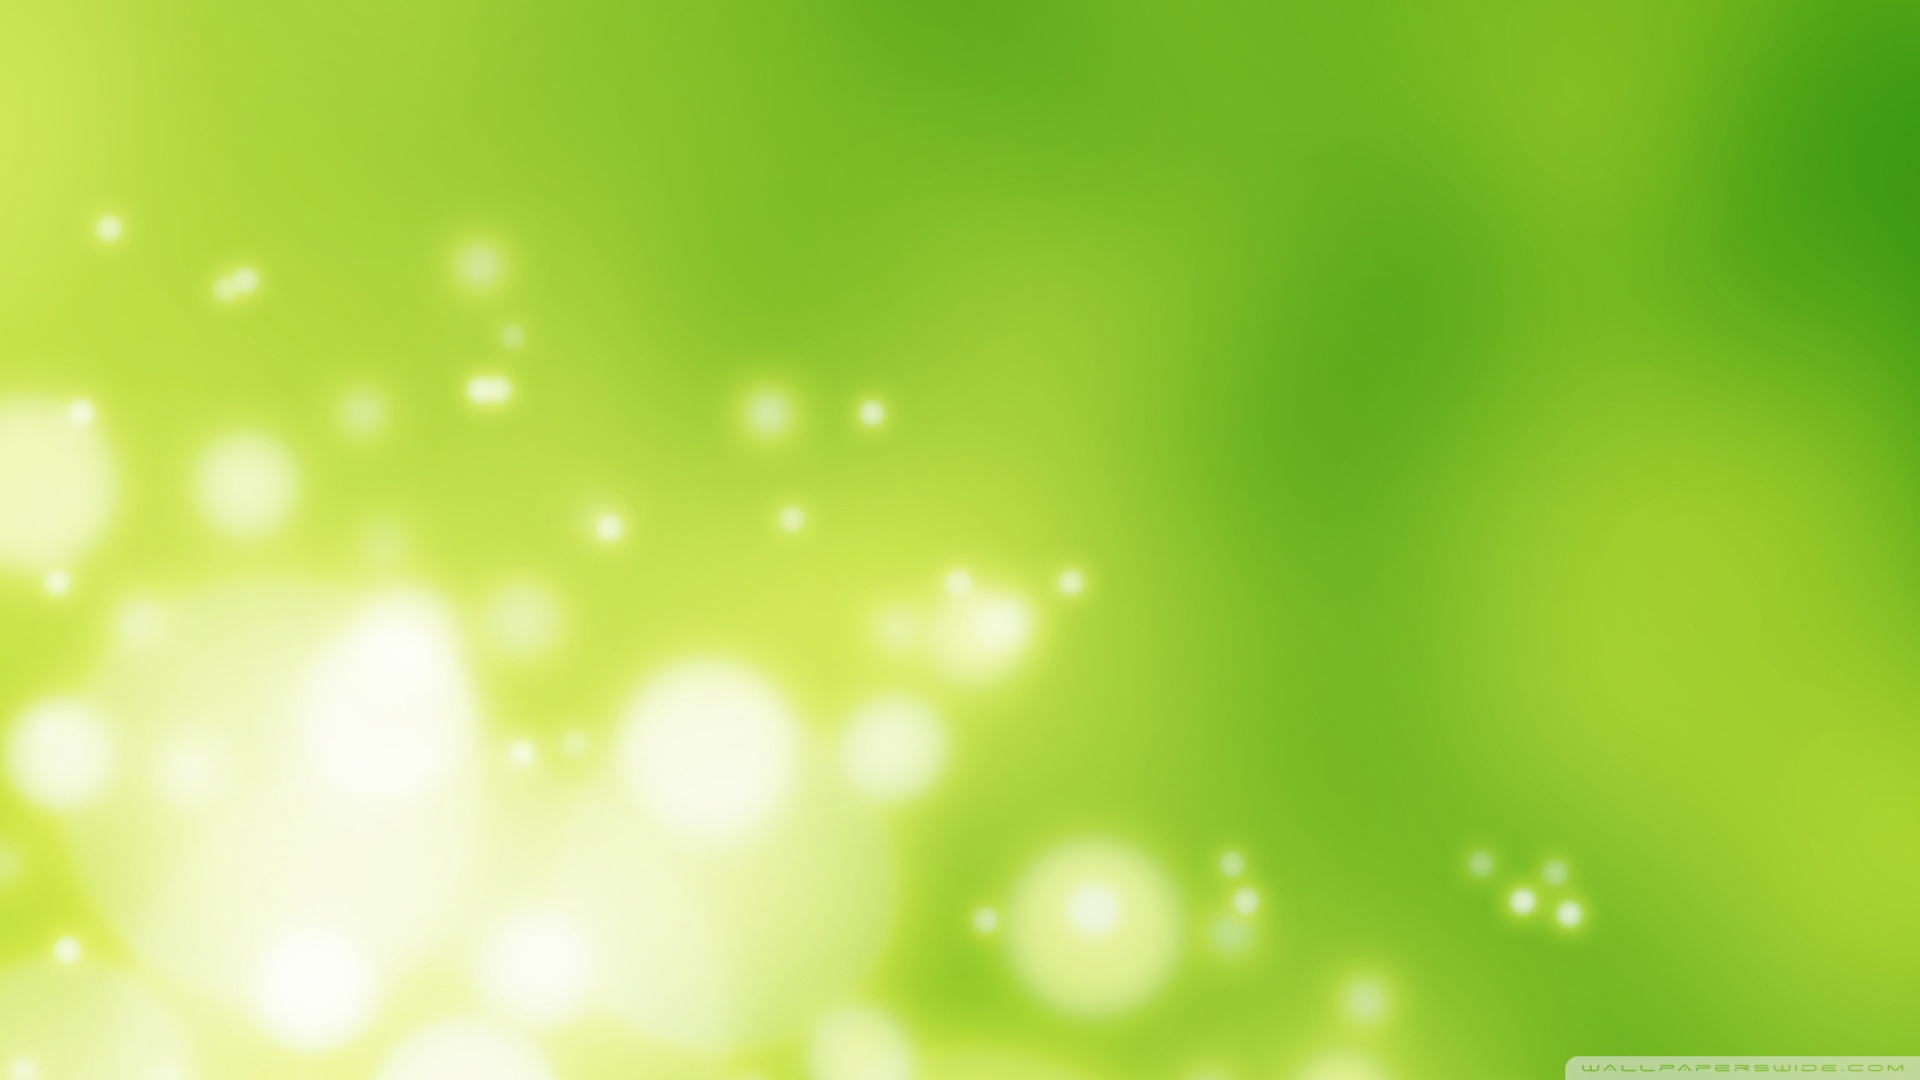 Green Elegant Wallpapers Android Apps On Google Play 1920x1080